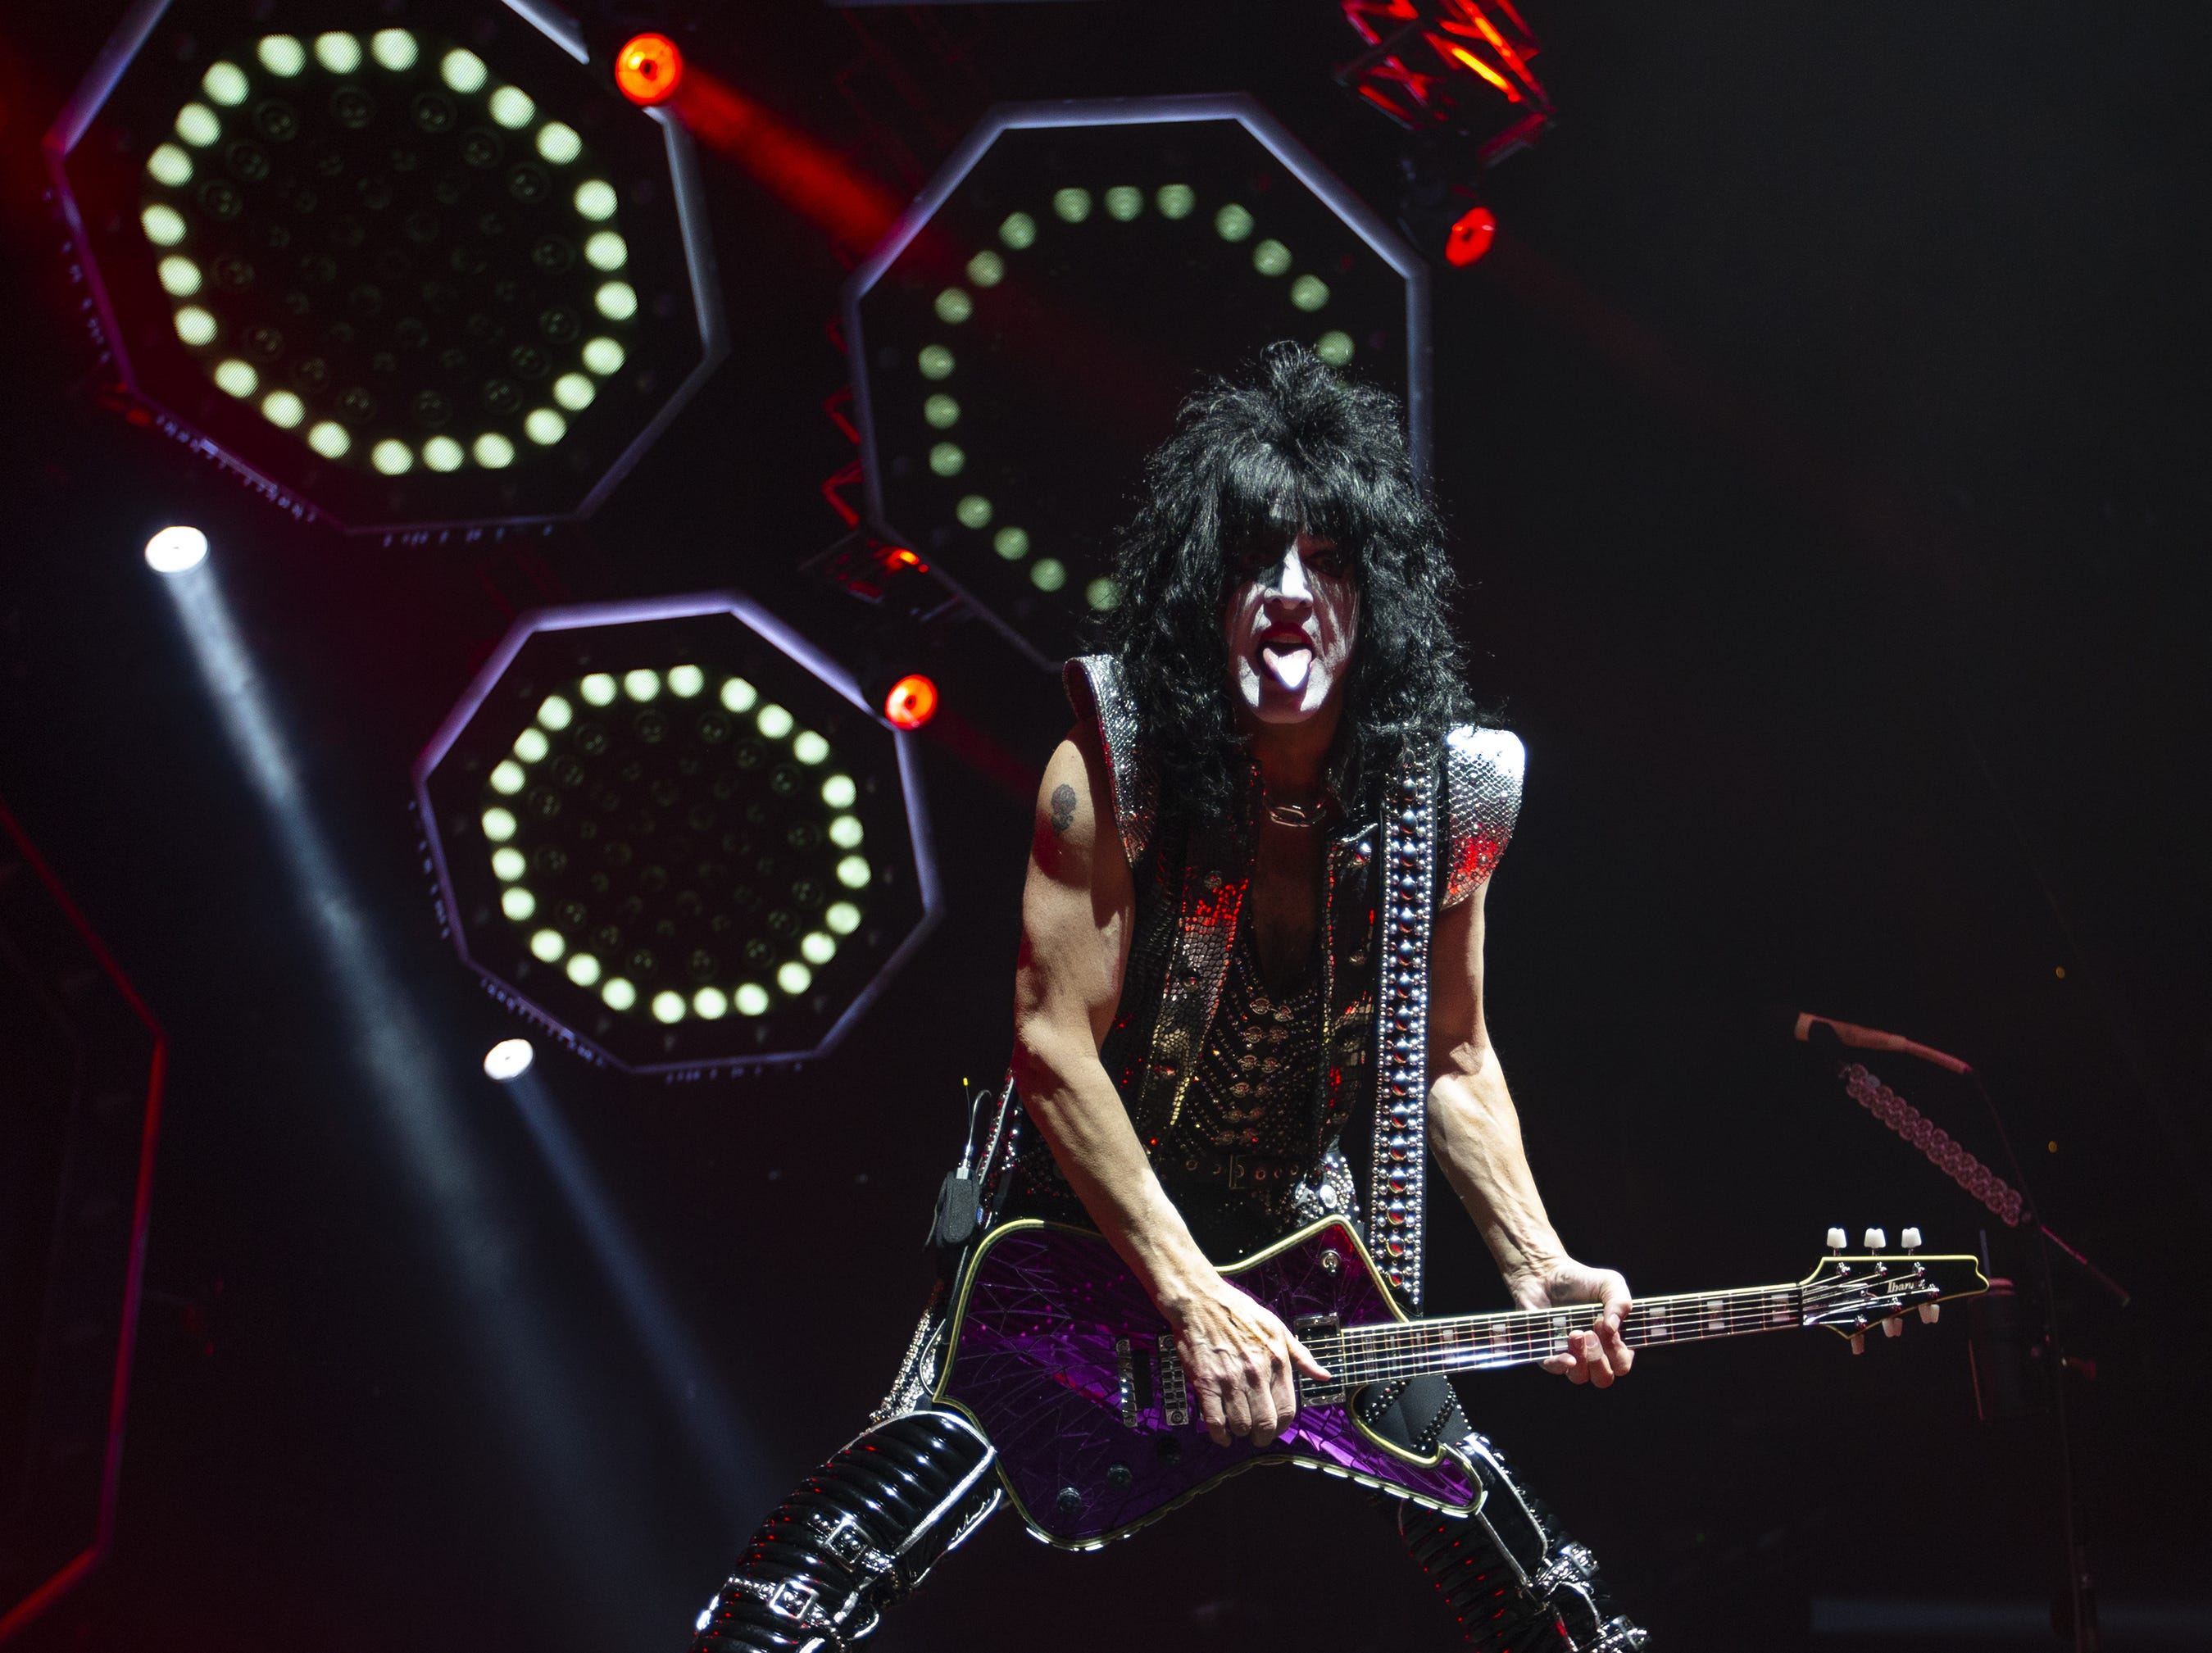 Paul Stanley of KISS rocks Gila River Arena during the End of the Road World Tour stop in Glendale on Wednesday, Feb. 13, 2019.  Thousands of fans came to see the band's farewell concert.